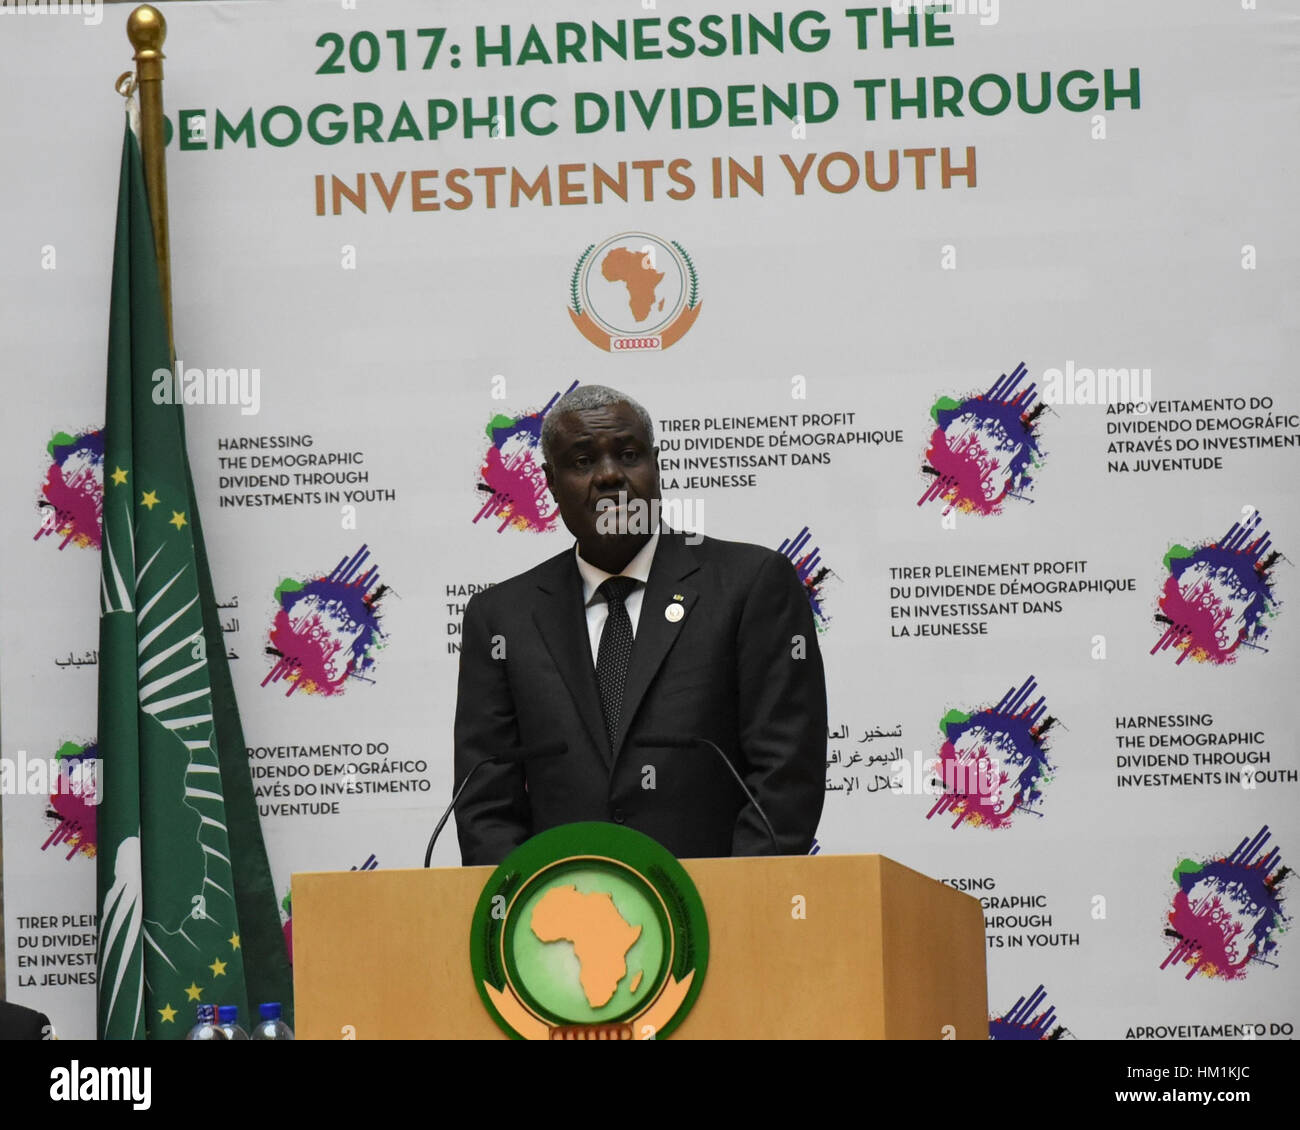 Harnessing the Dividend of Demographic through Investments in Youth